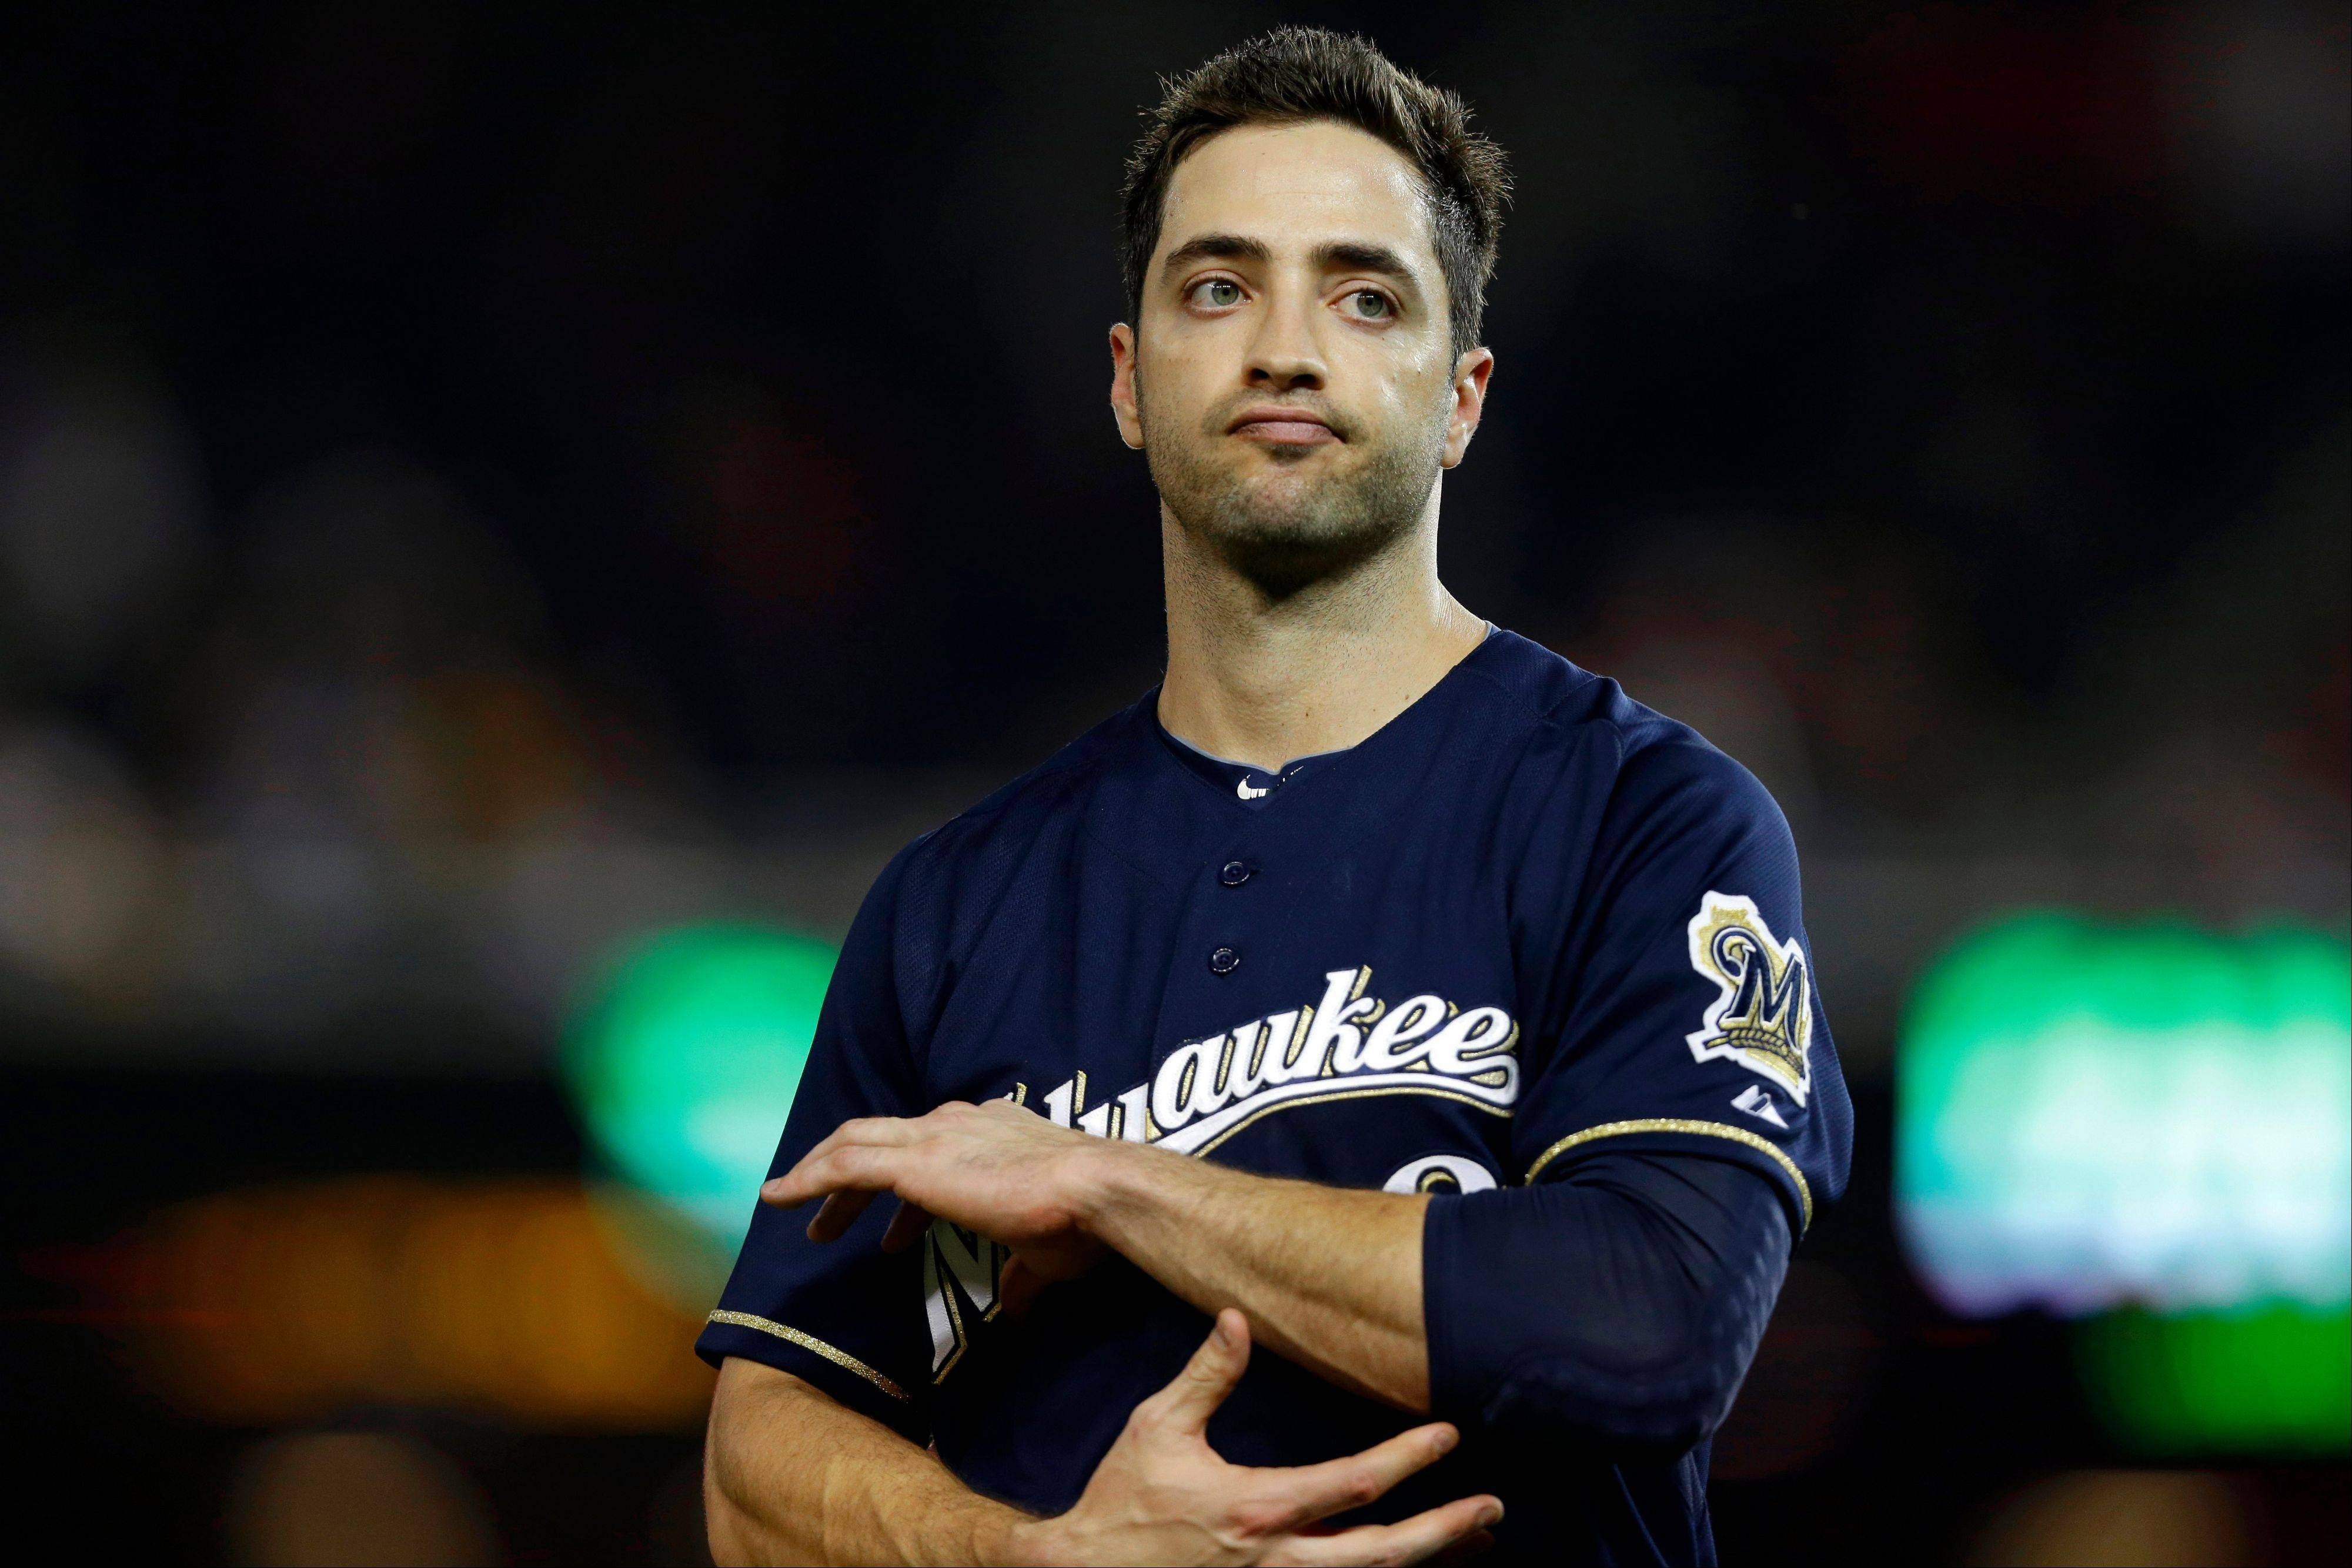 Milwaukee Brewers slugger Ryan Braun has been suspended without pay for the rest of the season for violating Major Leauge Baseball's drug policies.